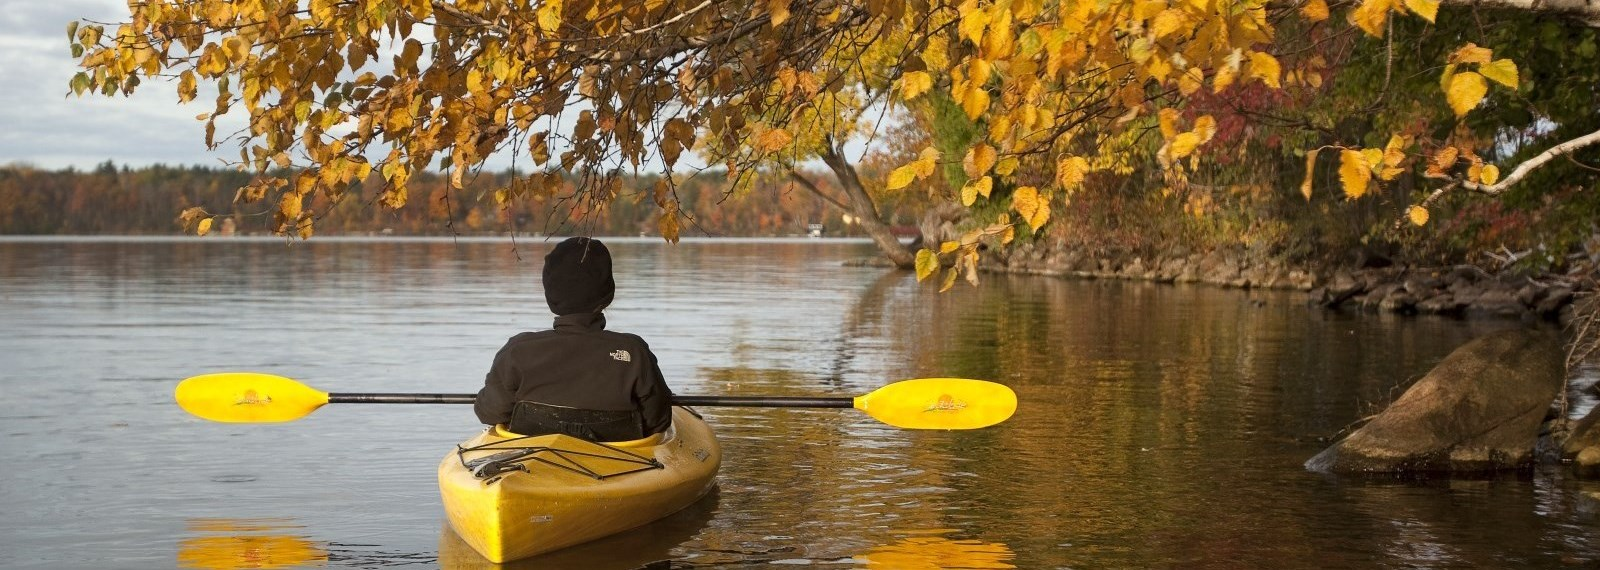 person in a canoe on the lake in the fall